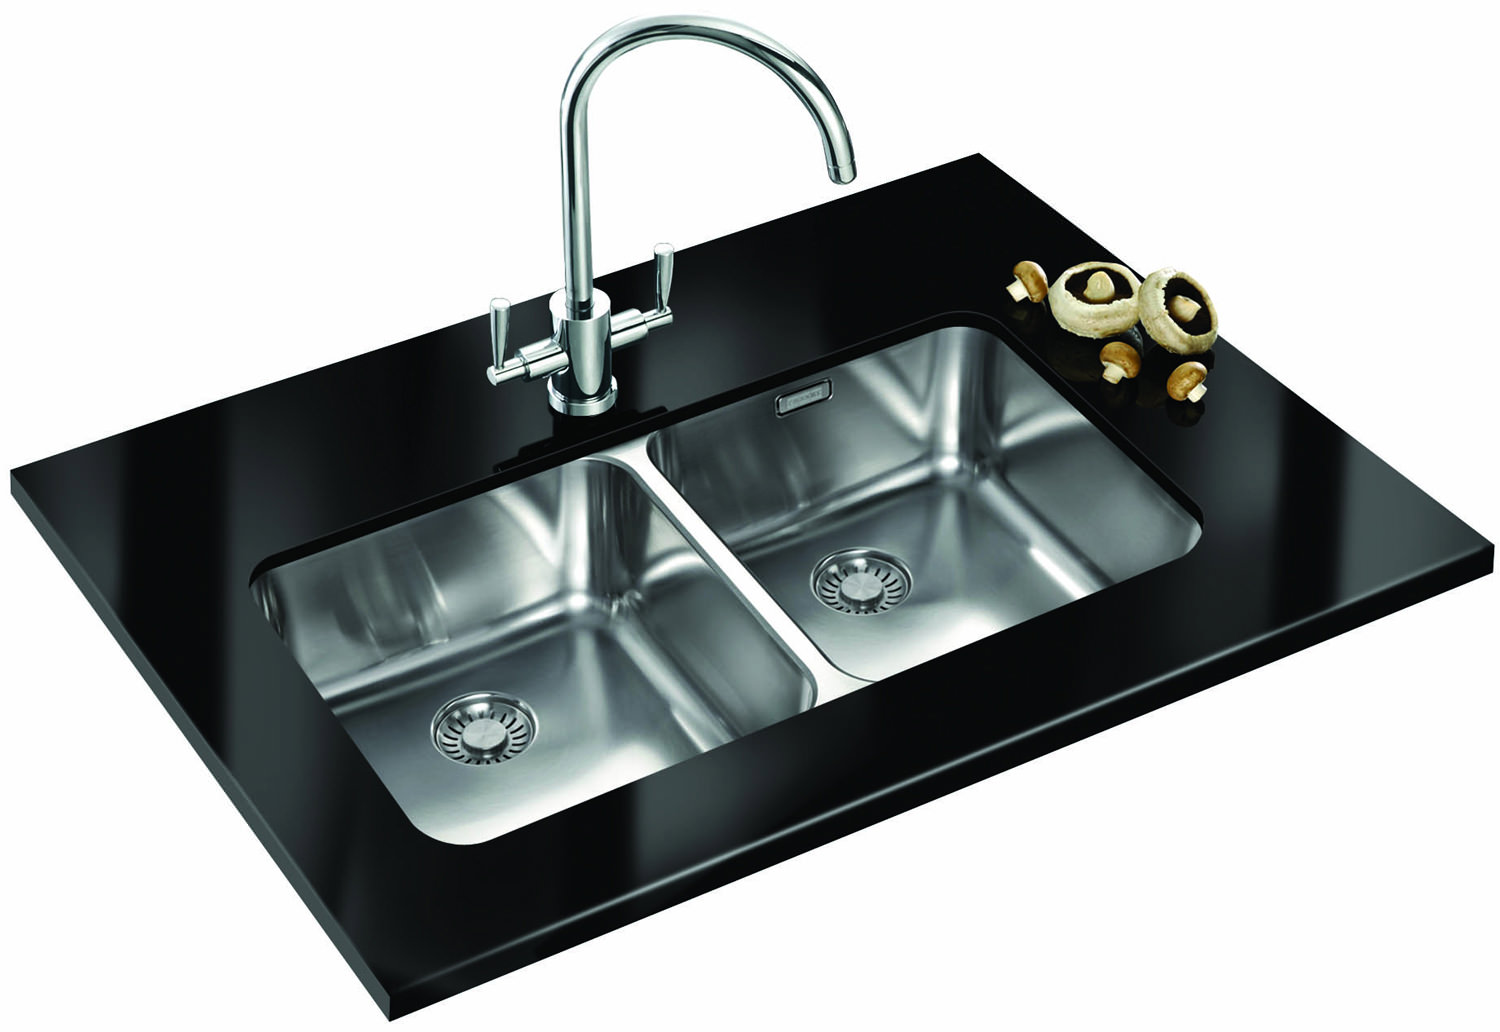 Franke Double Sink Undermount : ... of Franke Largo LAX 120 36-36 Stainless Steel 2.0 Bowl Undermount Sink